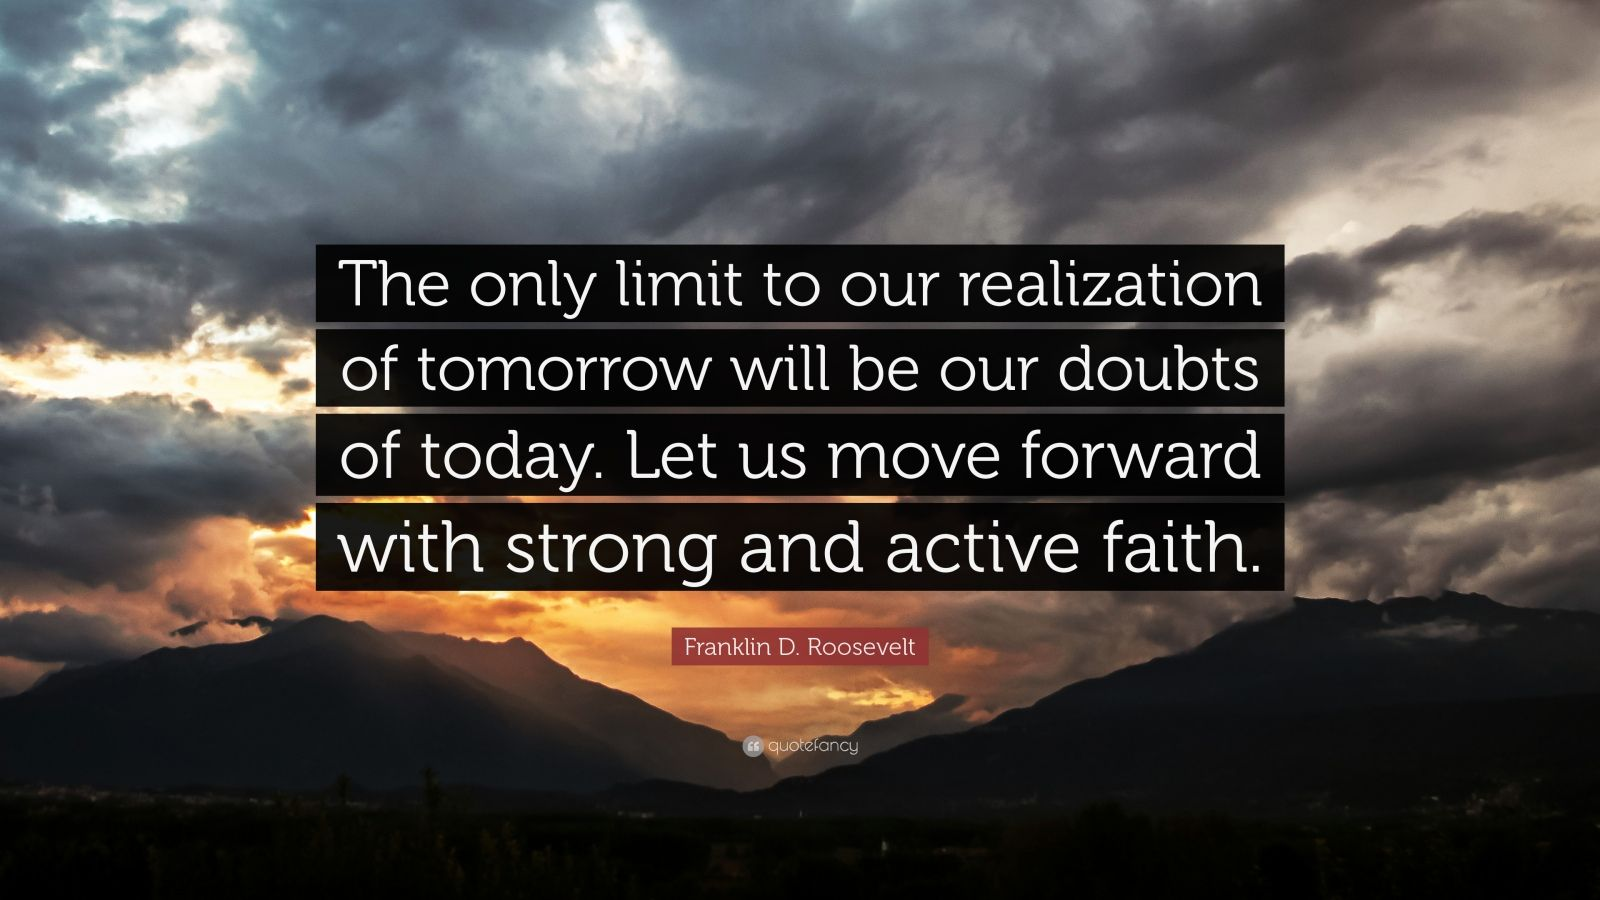 """Franklin D. Roosevelt Quote: """"The only limit to our realization of tomorrow will be our doubts of today. Let us move forward with strong and active faith."""""""